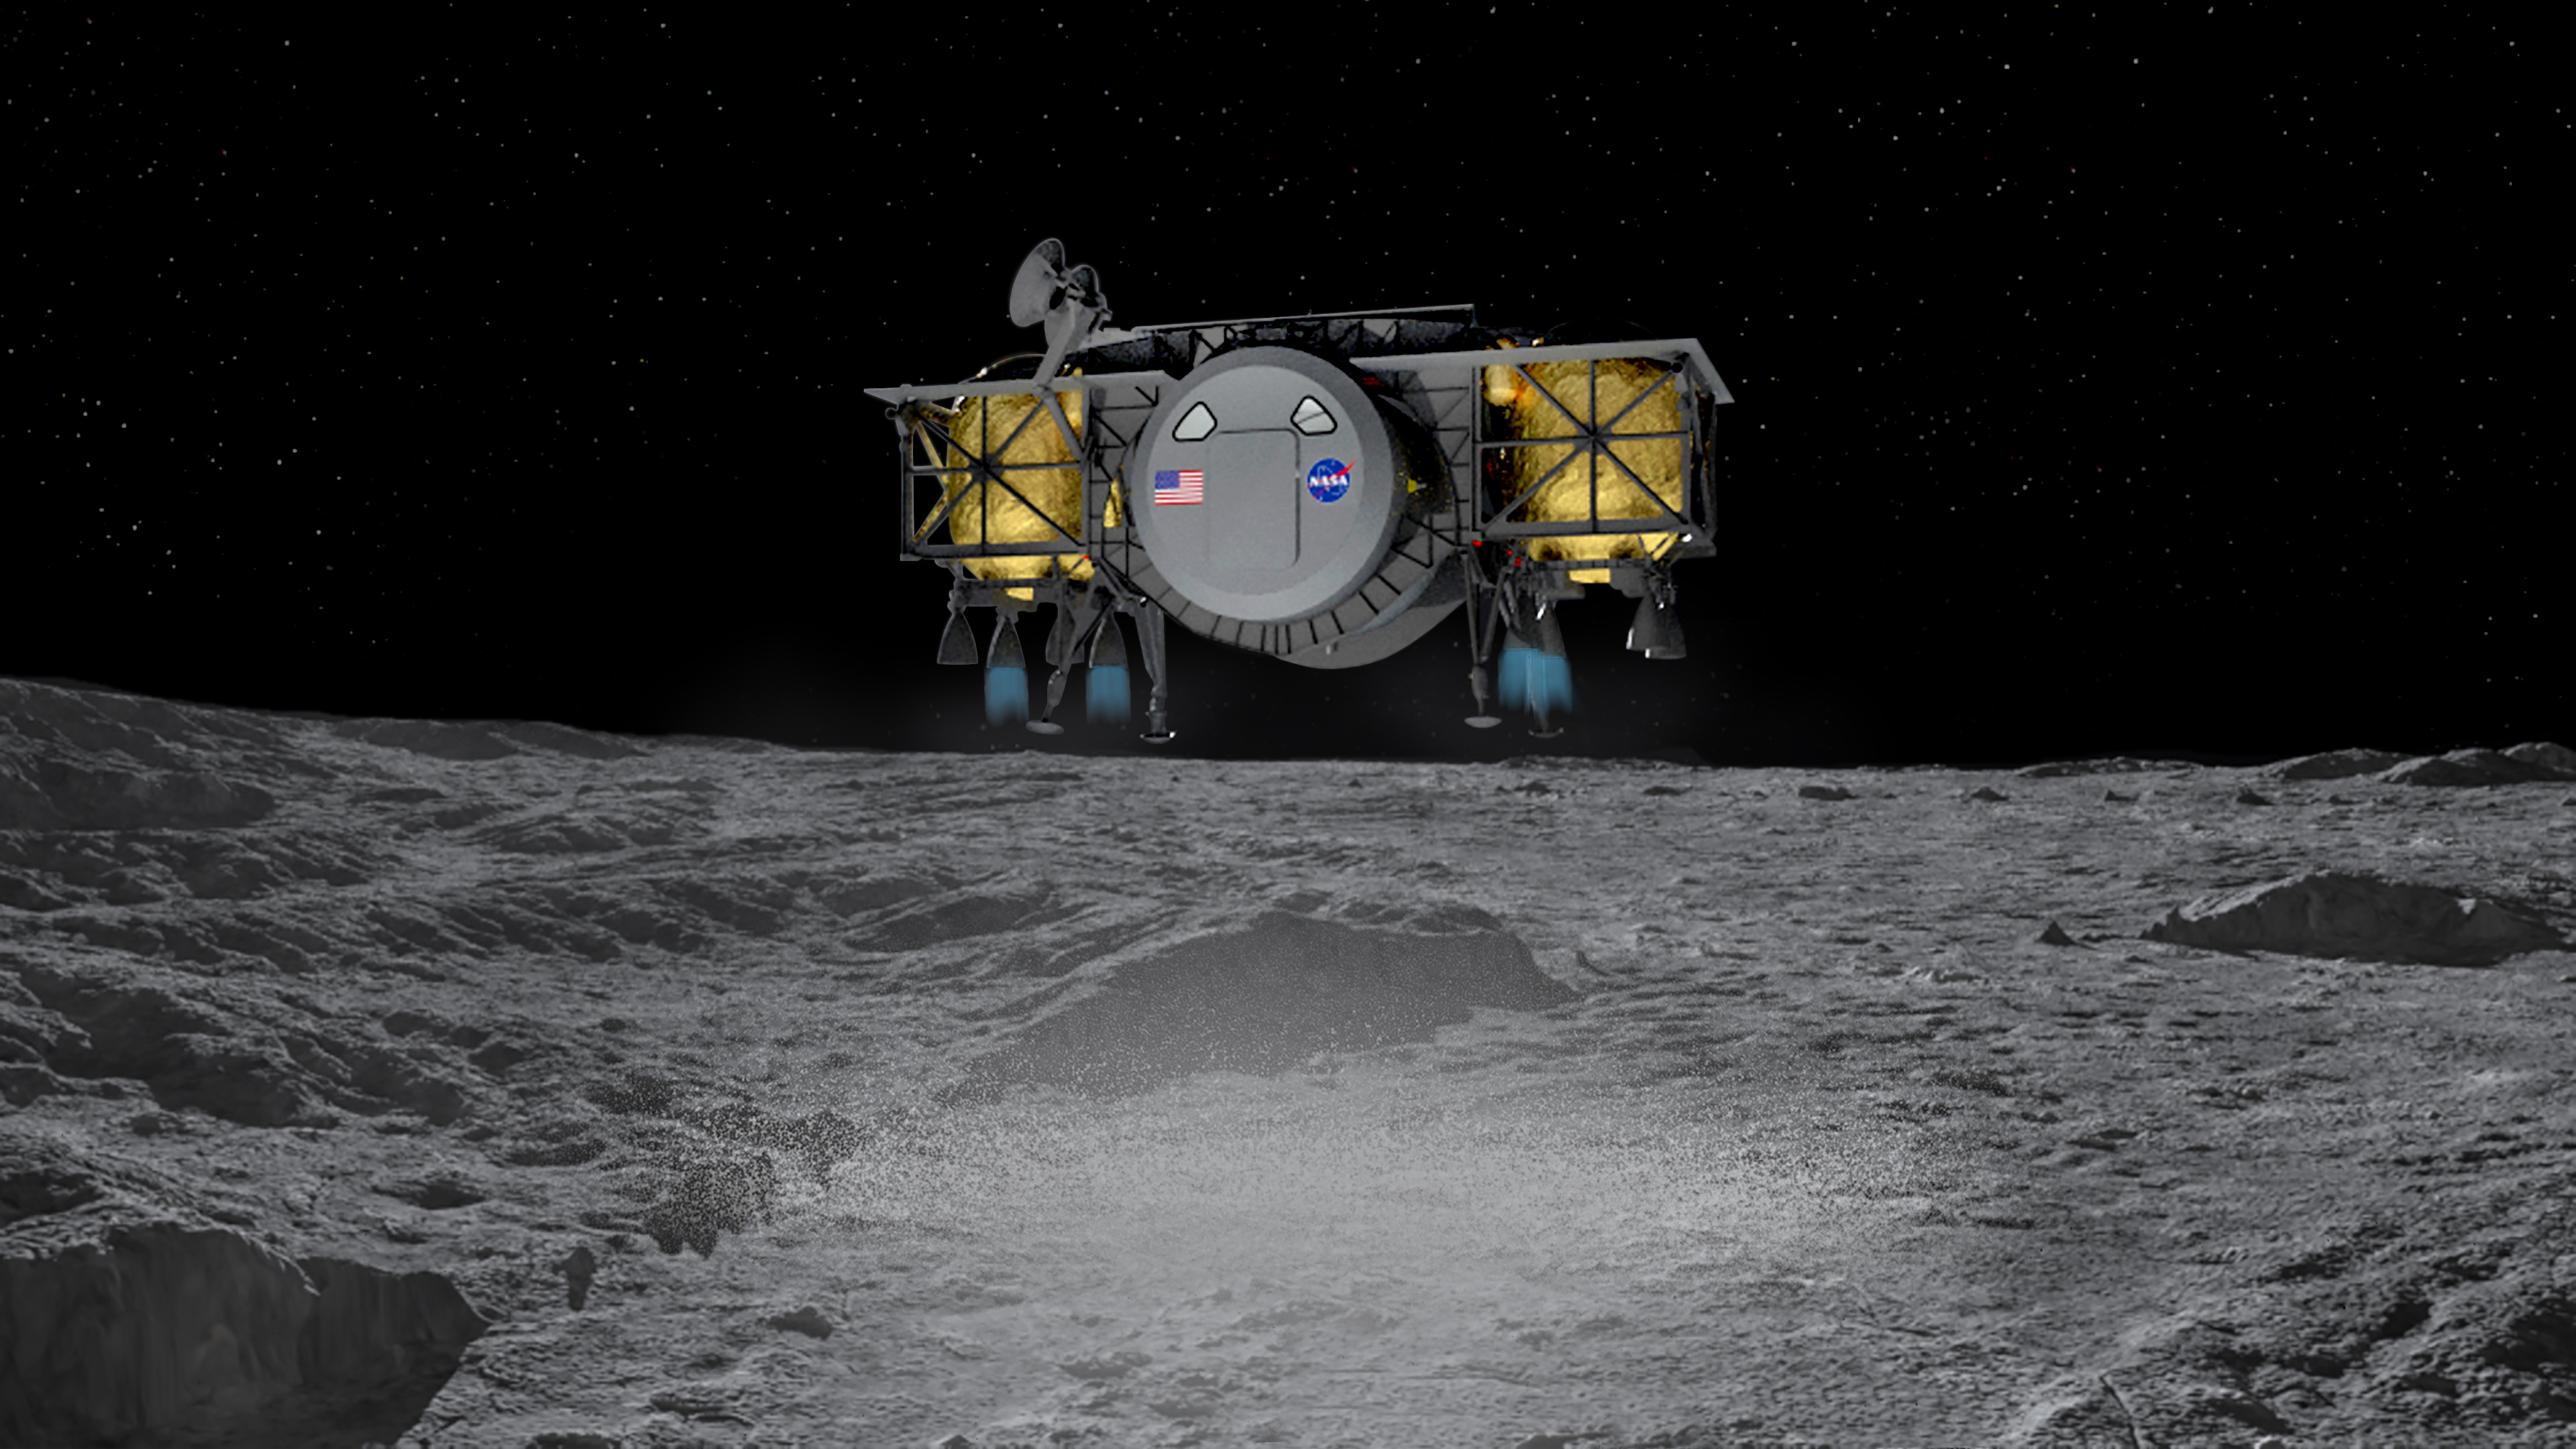 Human lander on the surface of the moon. Image via Dynetics.